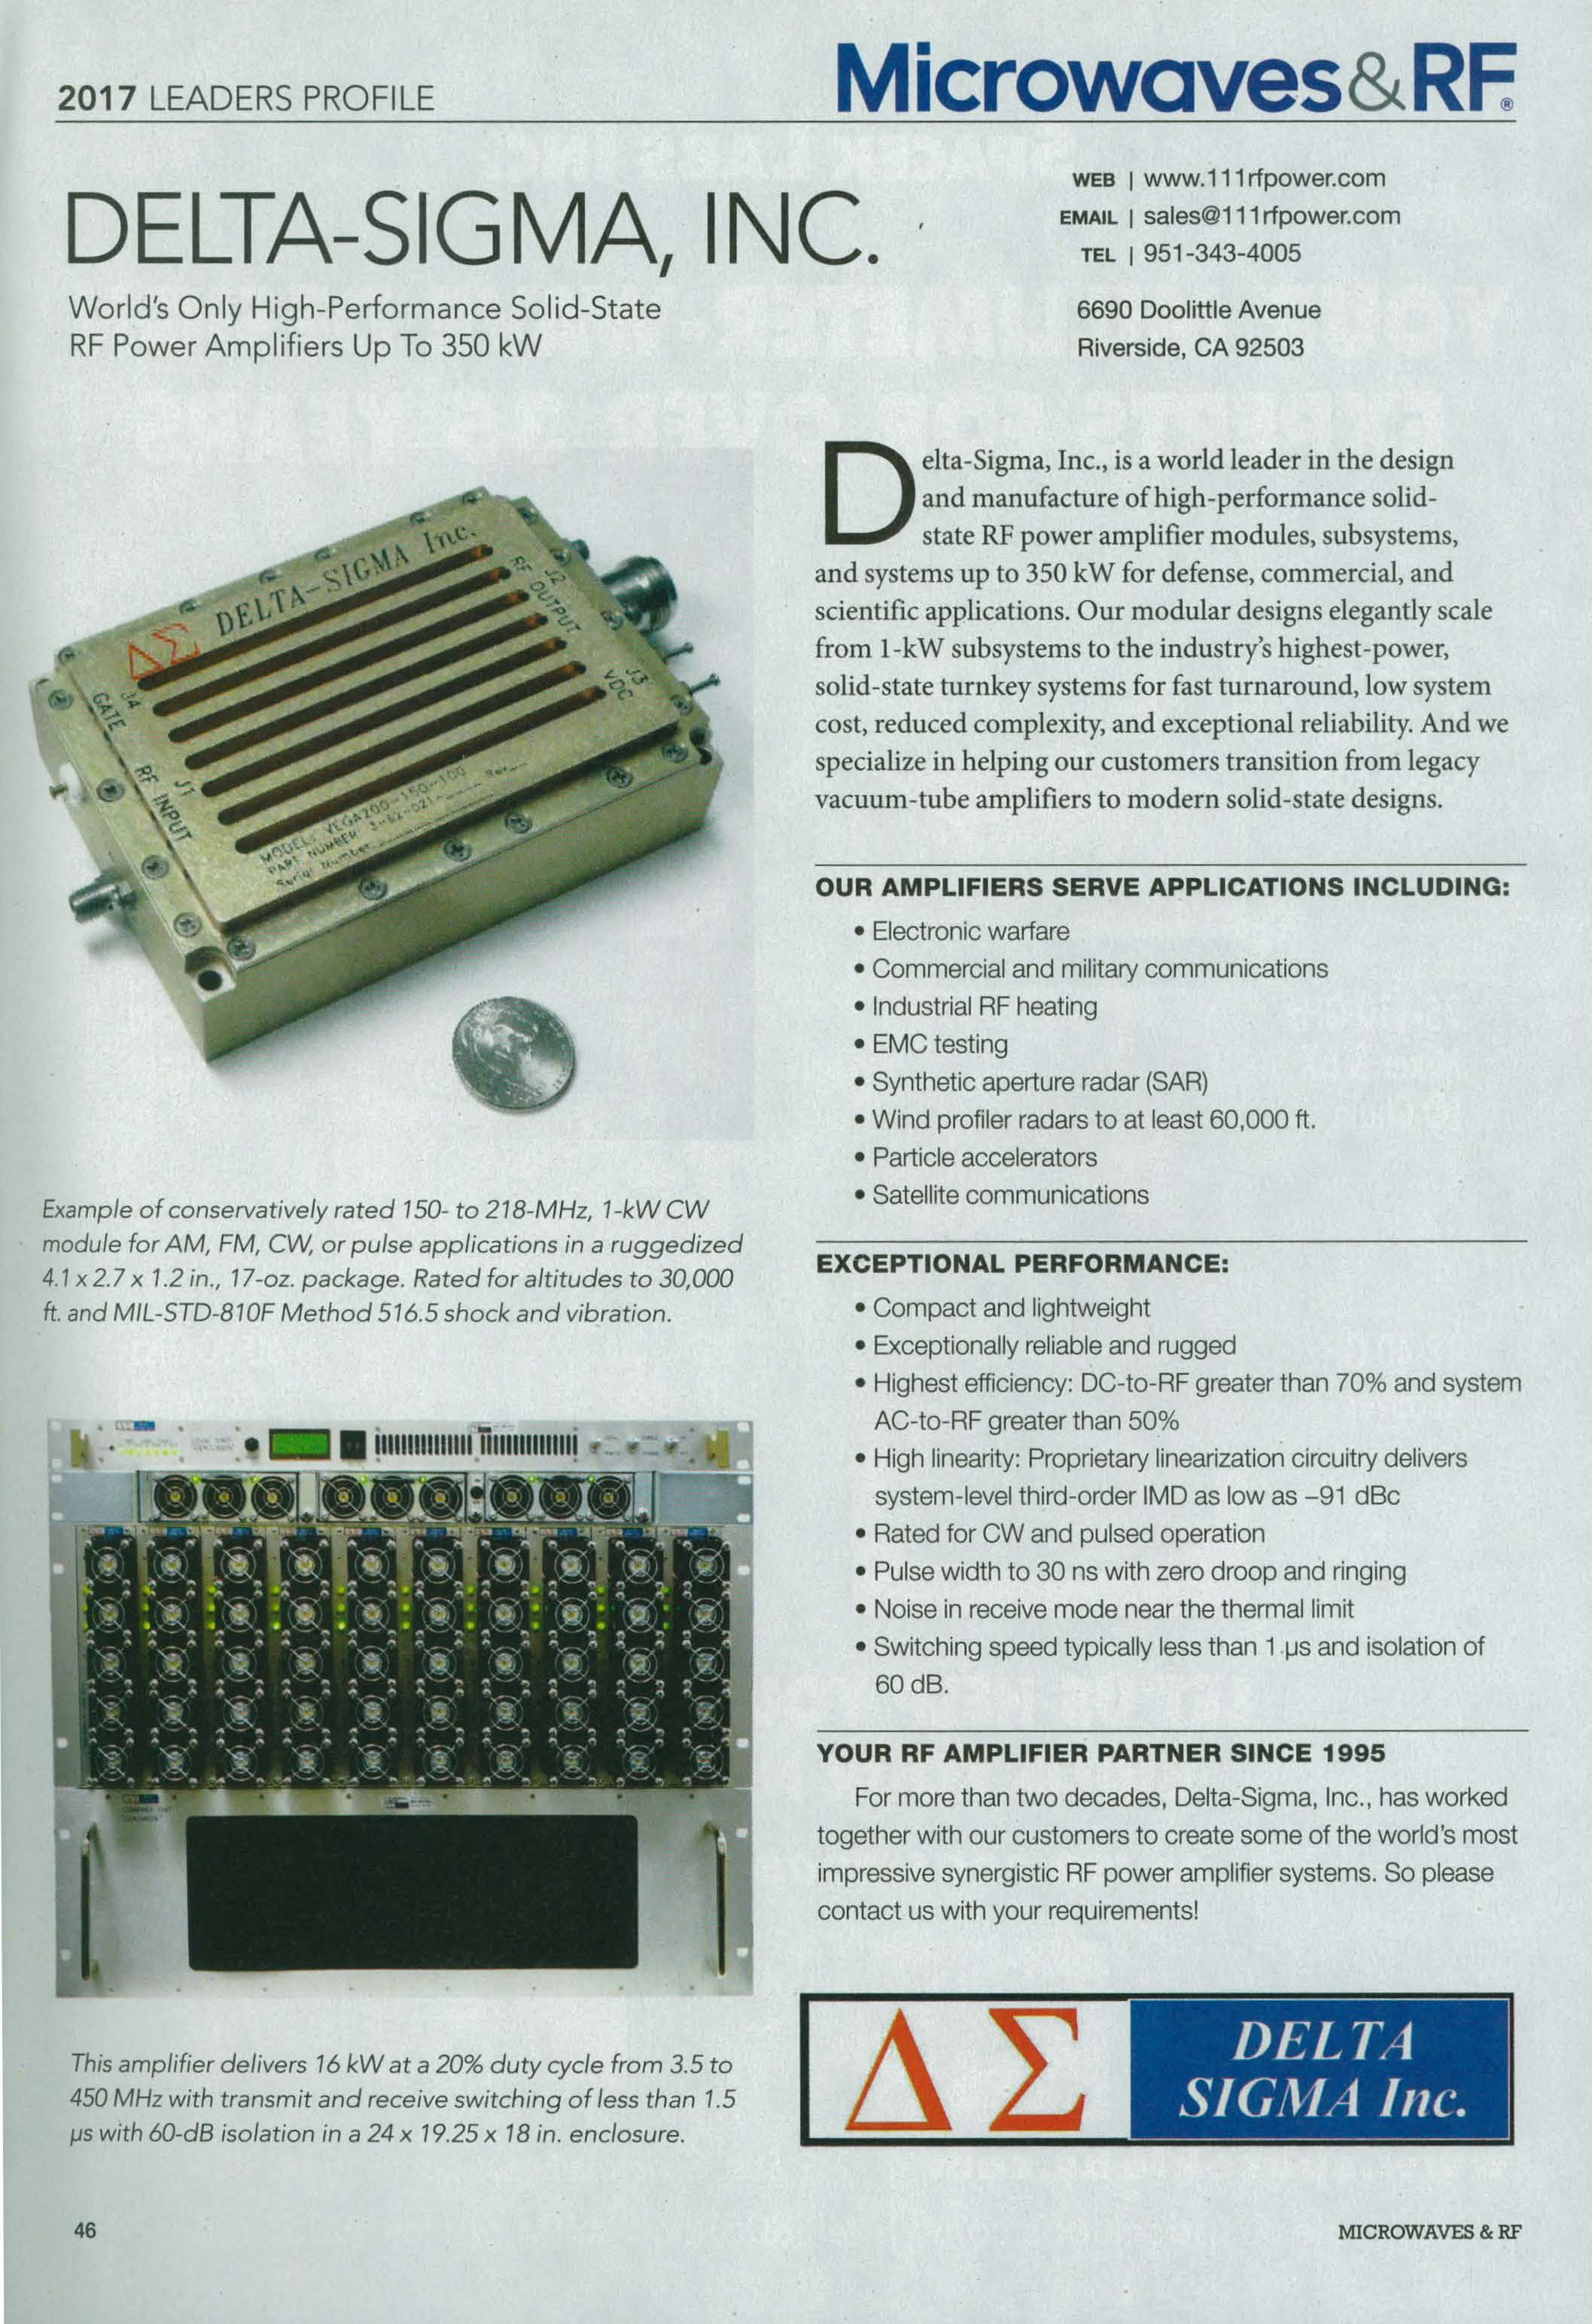 The World's ONLY High-Performance Solid-State RF Amplifiers Up To